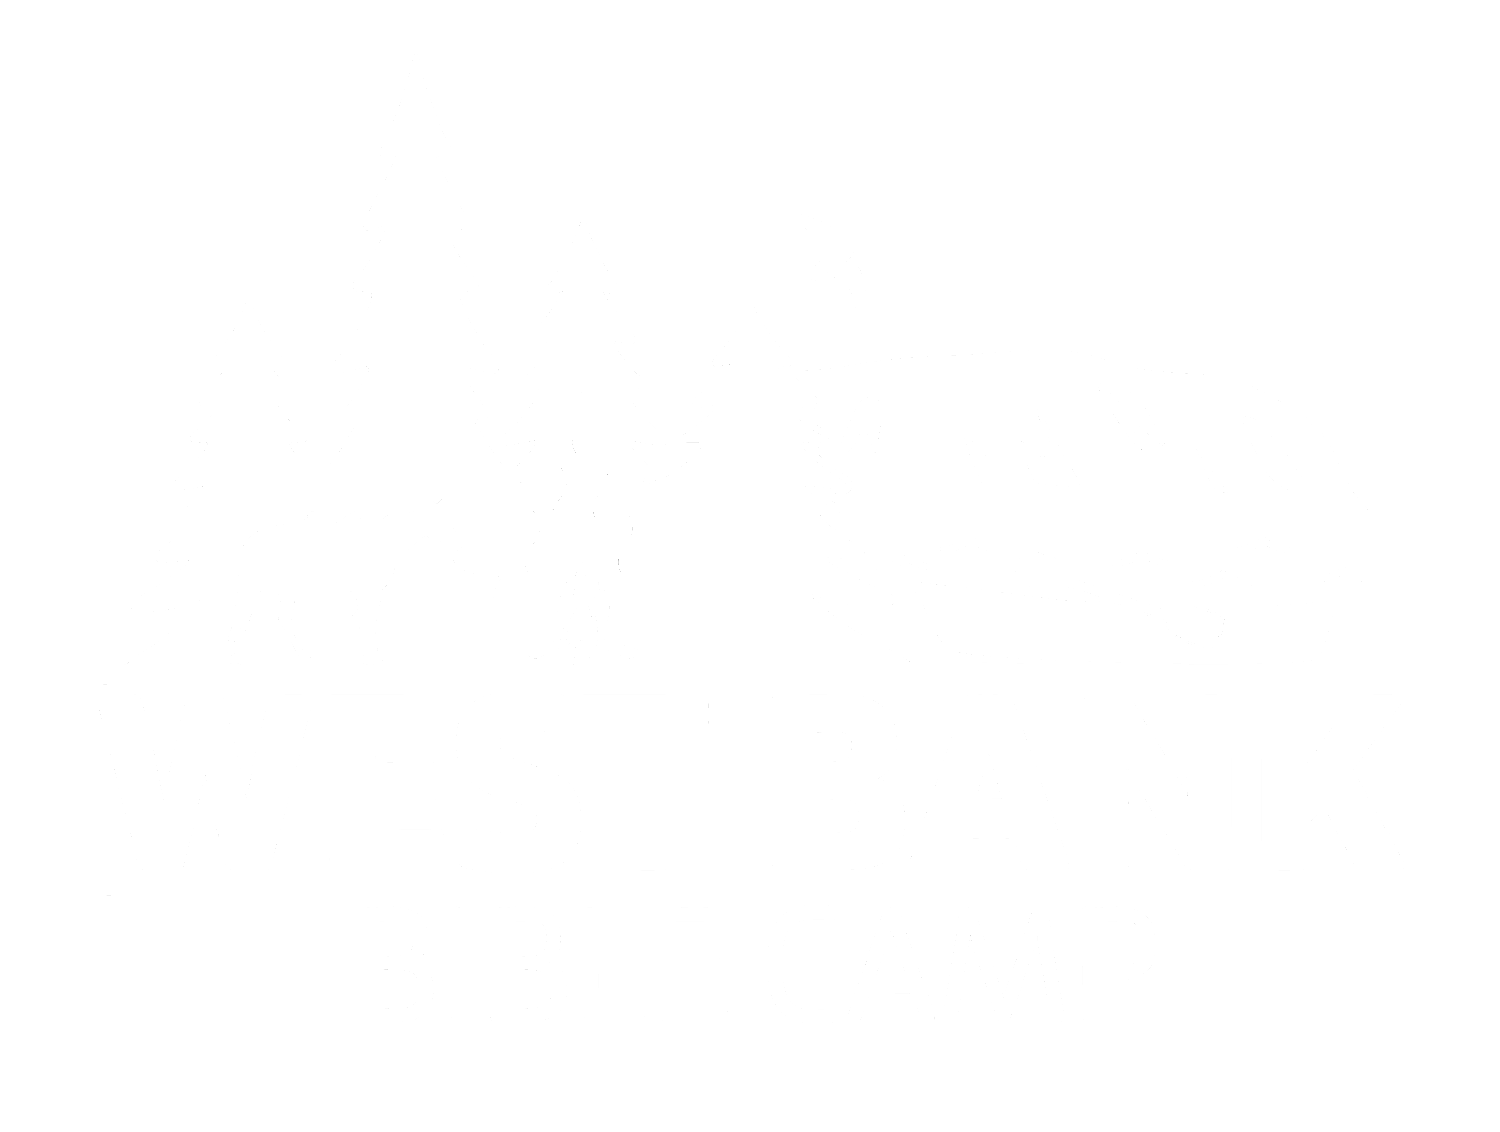 West Bank Bible Camp